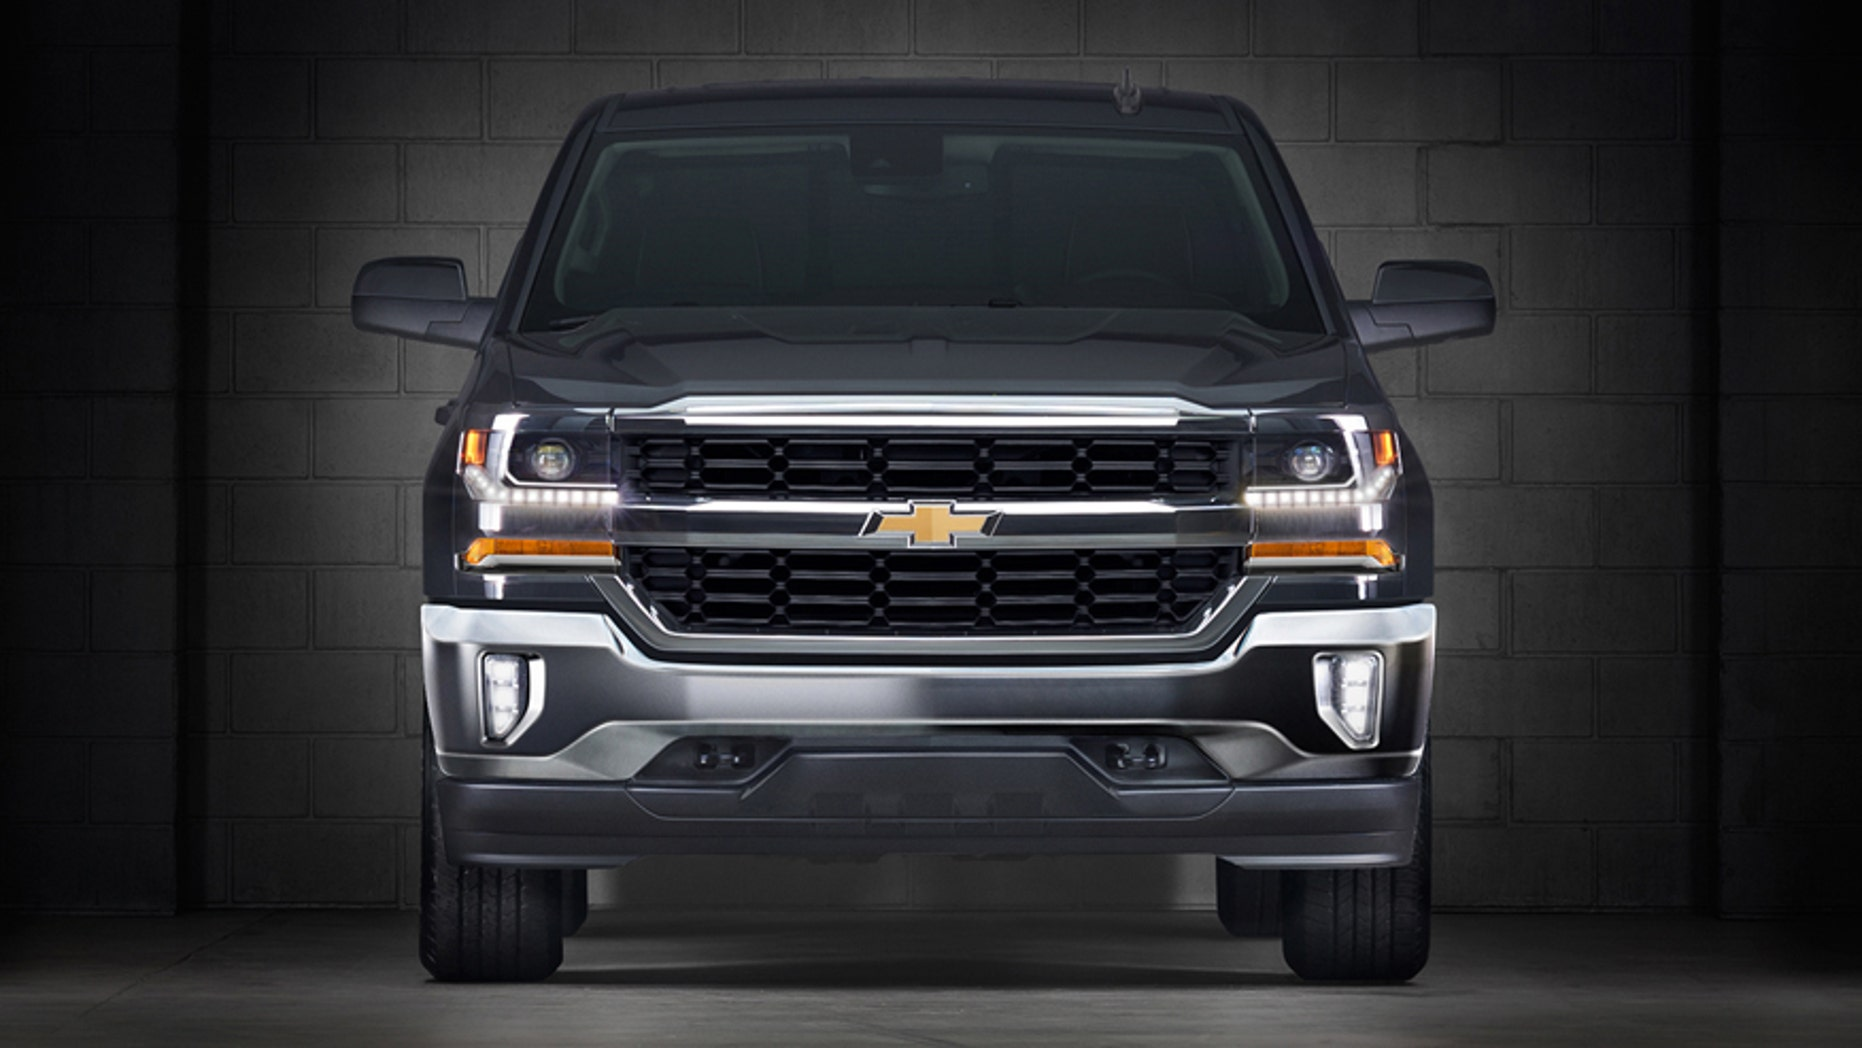 Ford S Planning A Hybrid Pickup But Gm Already Makes One